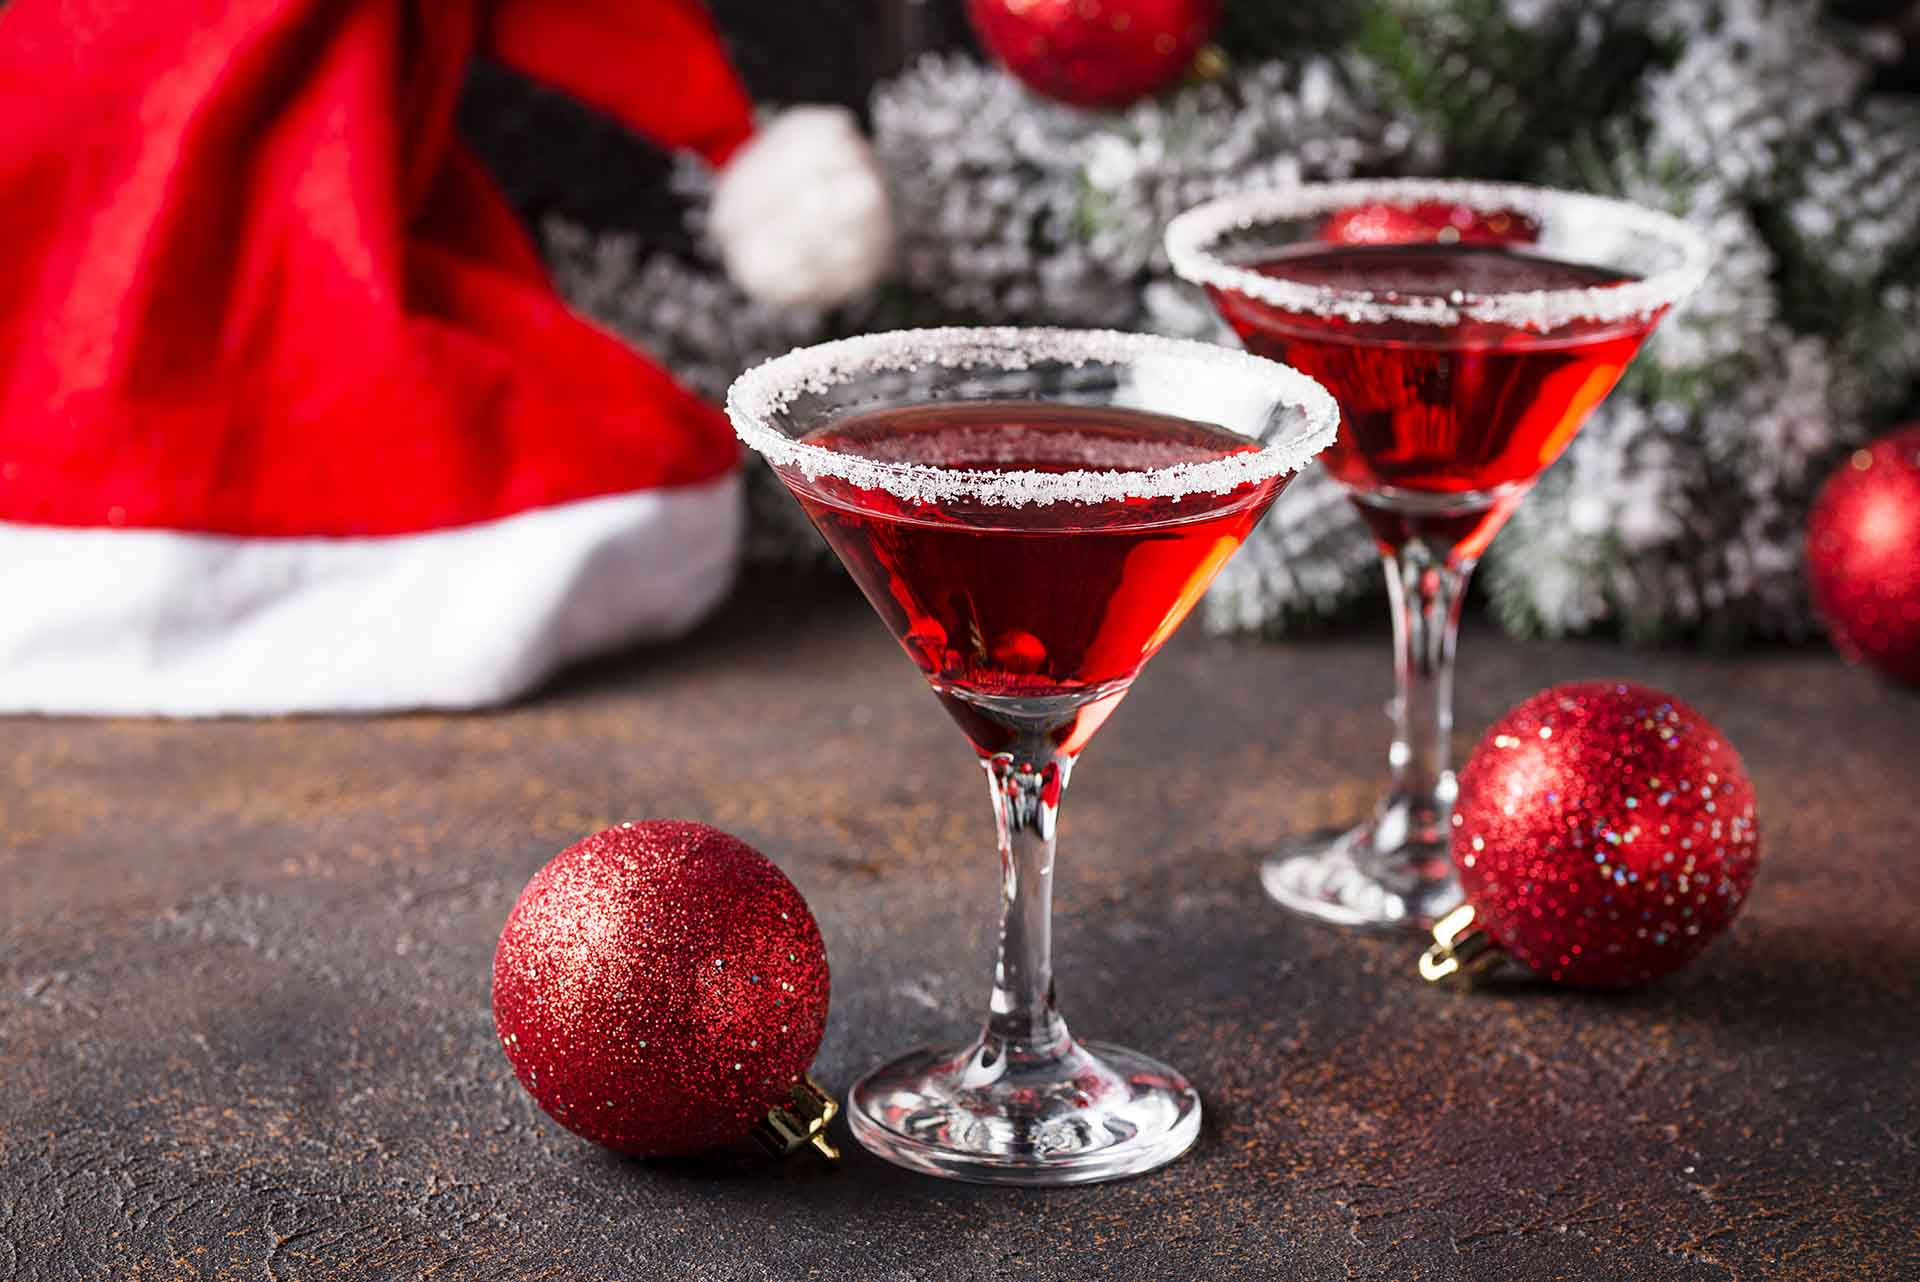 Festive-looking holiday cocktails